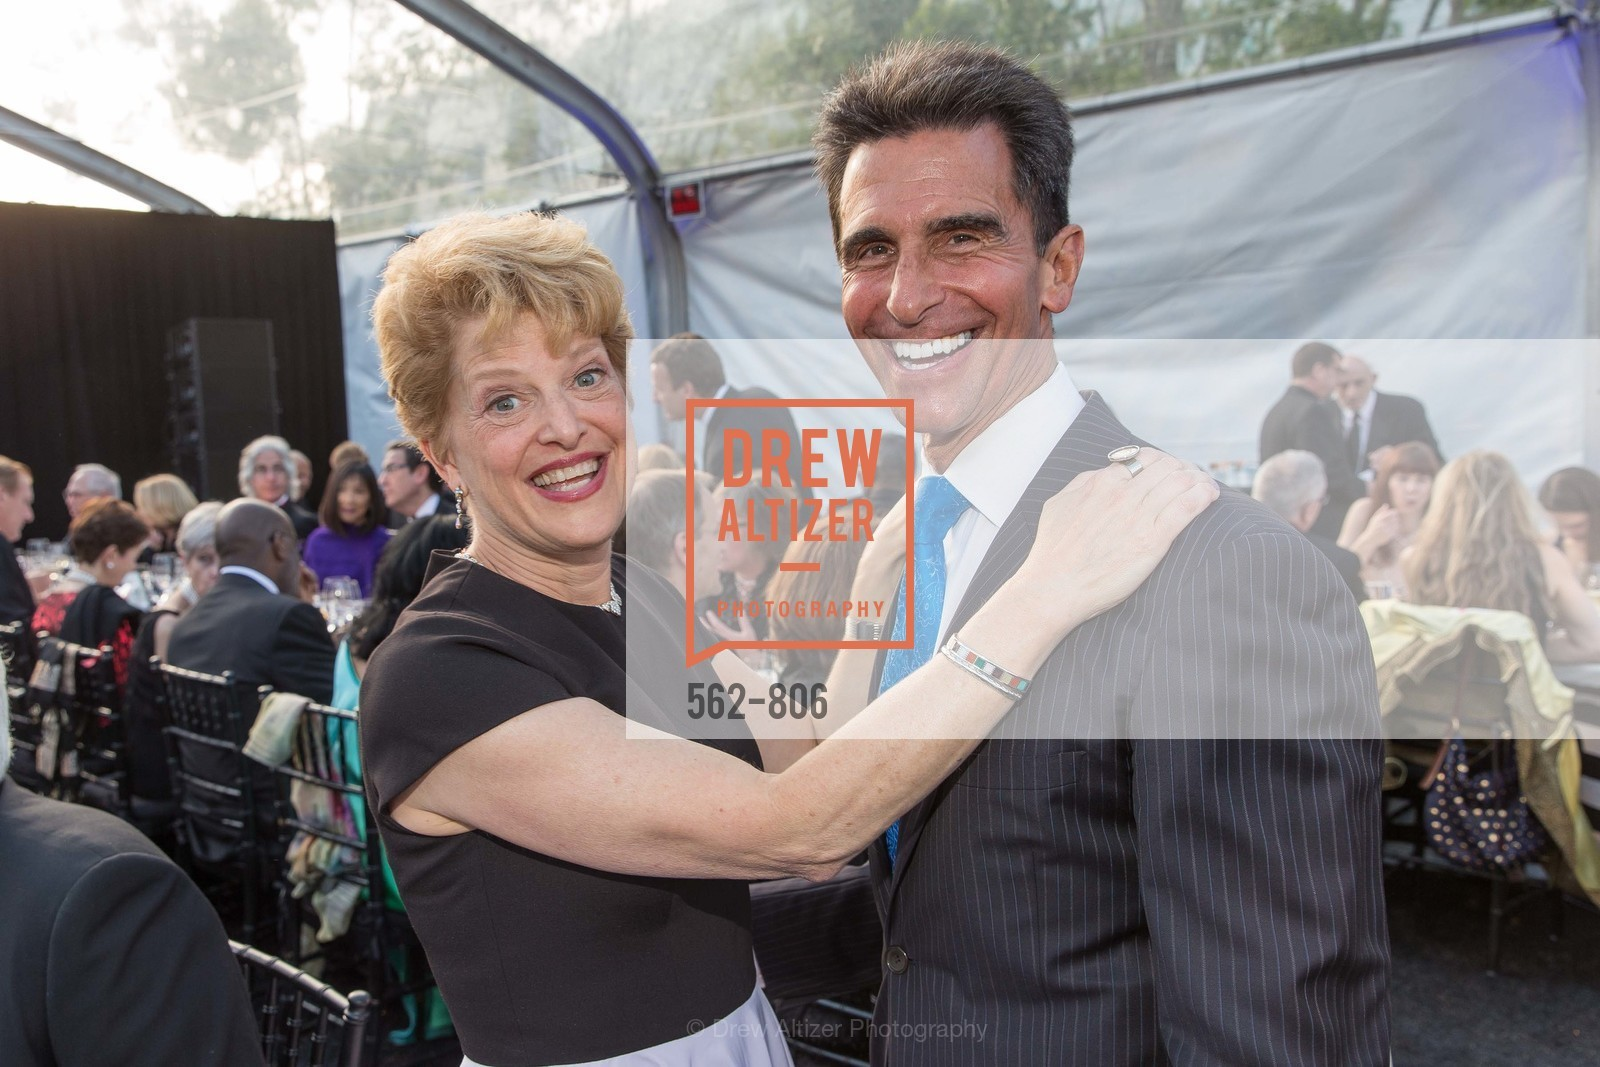 Carey Perloff, Mark Leno, A.C.T. Gala Come Get Stranded, US, April 25th, 2015,Drew Altizer, Drew Altizer Photography, full-service agency, private events, San Francisco photographer, photographer california